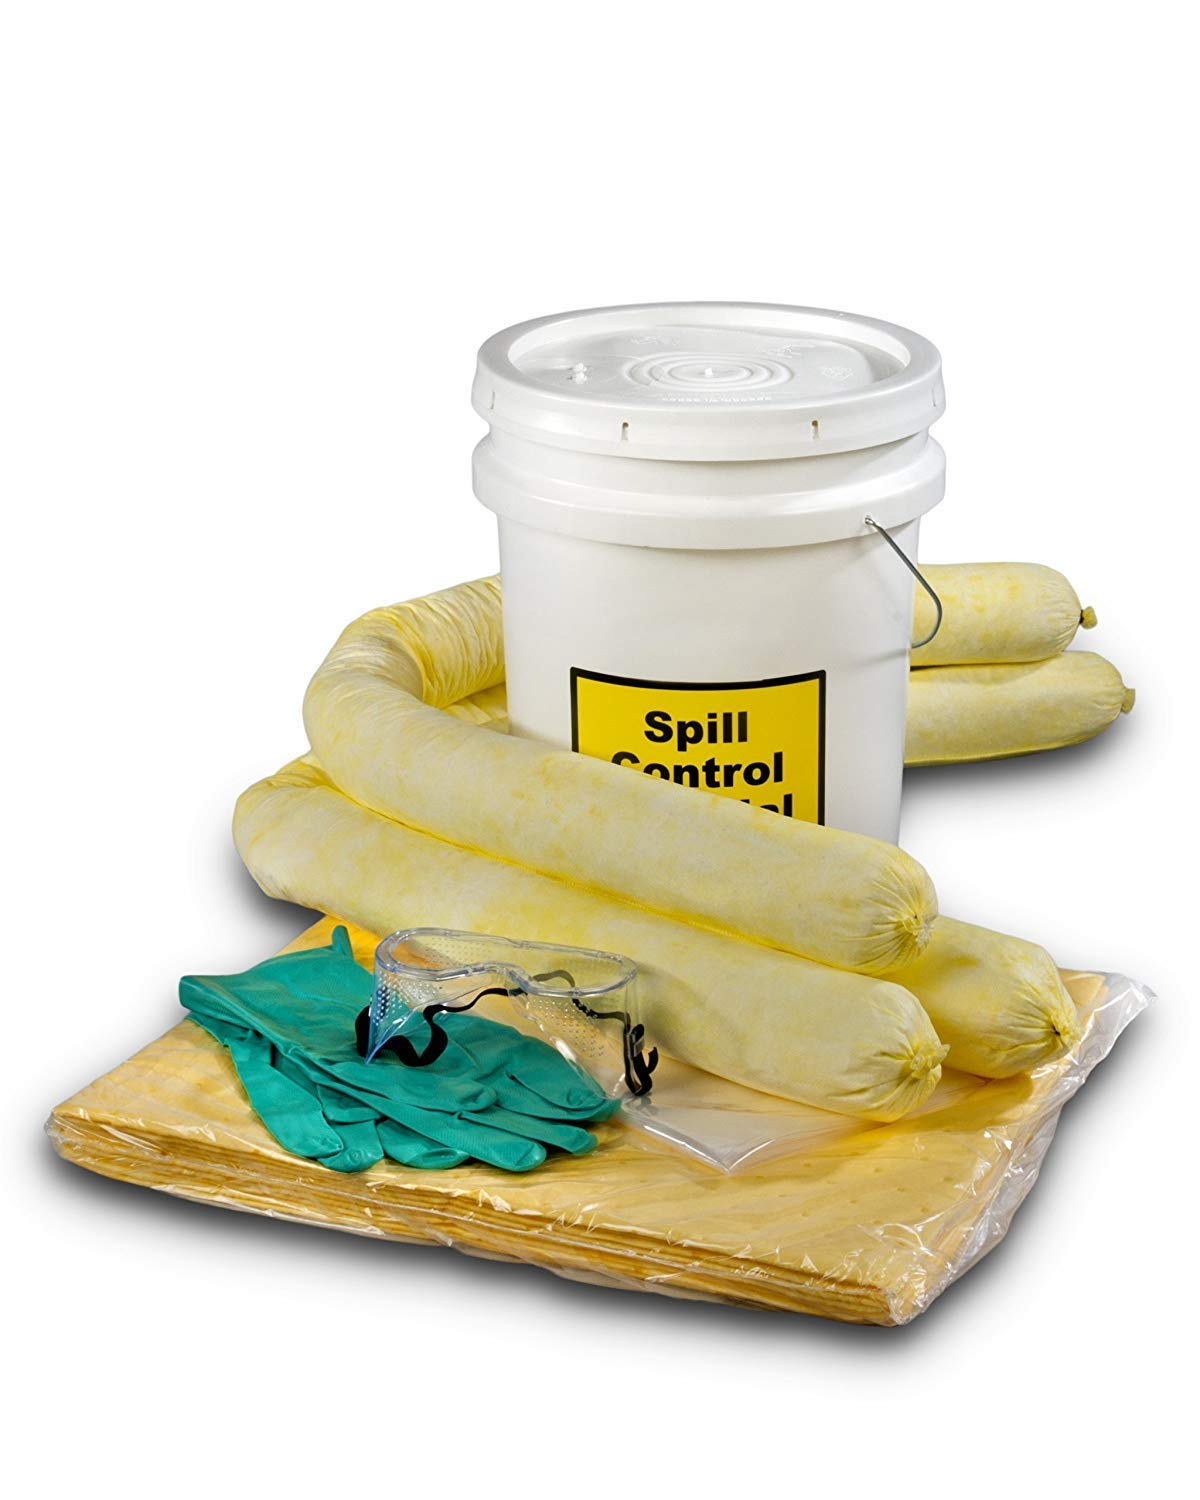 ESP SK-H5 16 Piece 5 Gallons Hazmat Absorbent Spill Kit, 5 Gallons Oil Absorbency (Pack of 4) by ESP (Image #2)